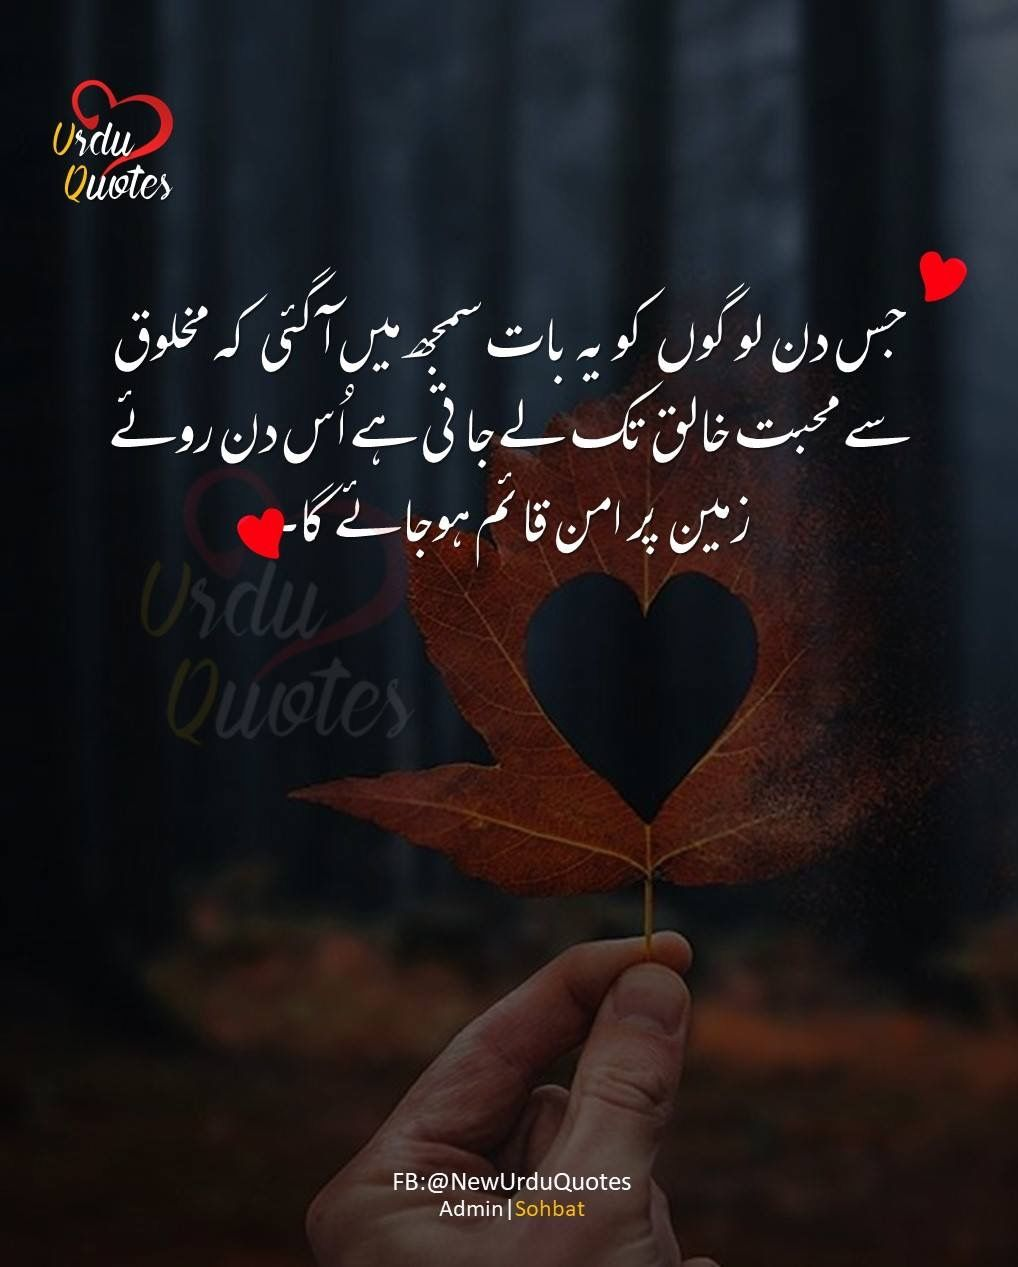 Idea by Khushi S on Urdu quotes Mind blowing thoughts